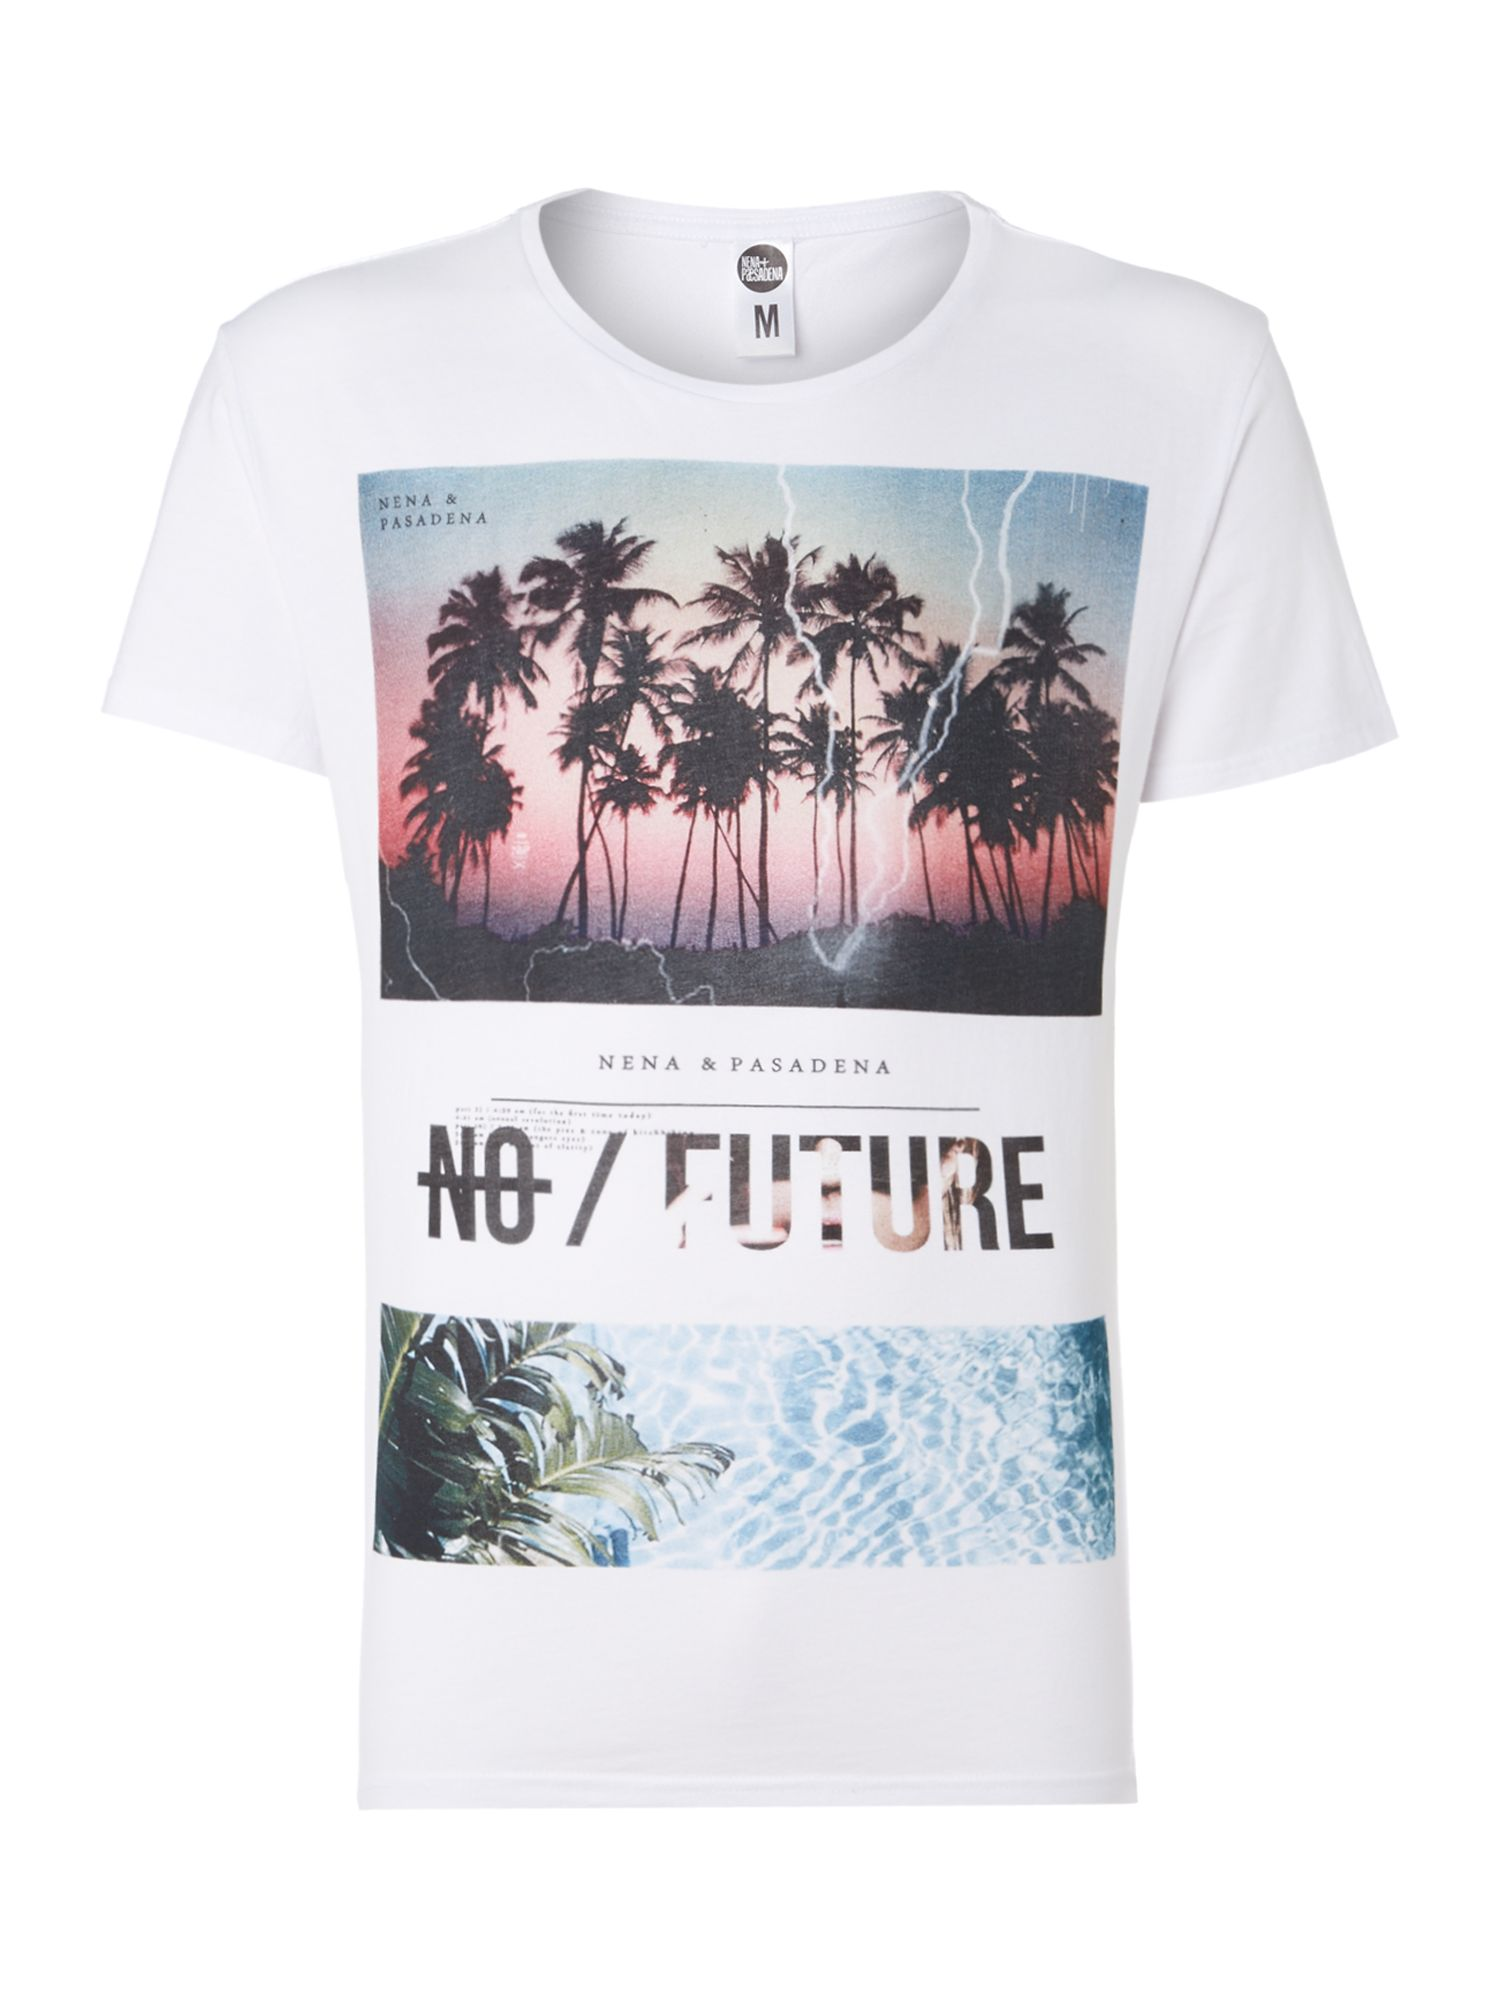 No future plans print t shirt